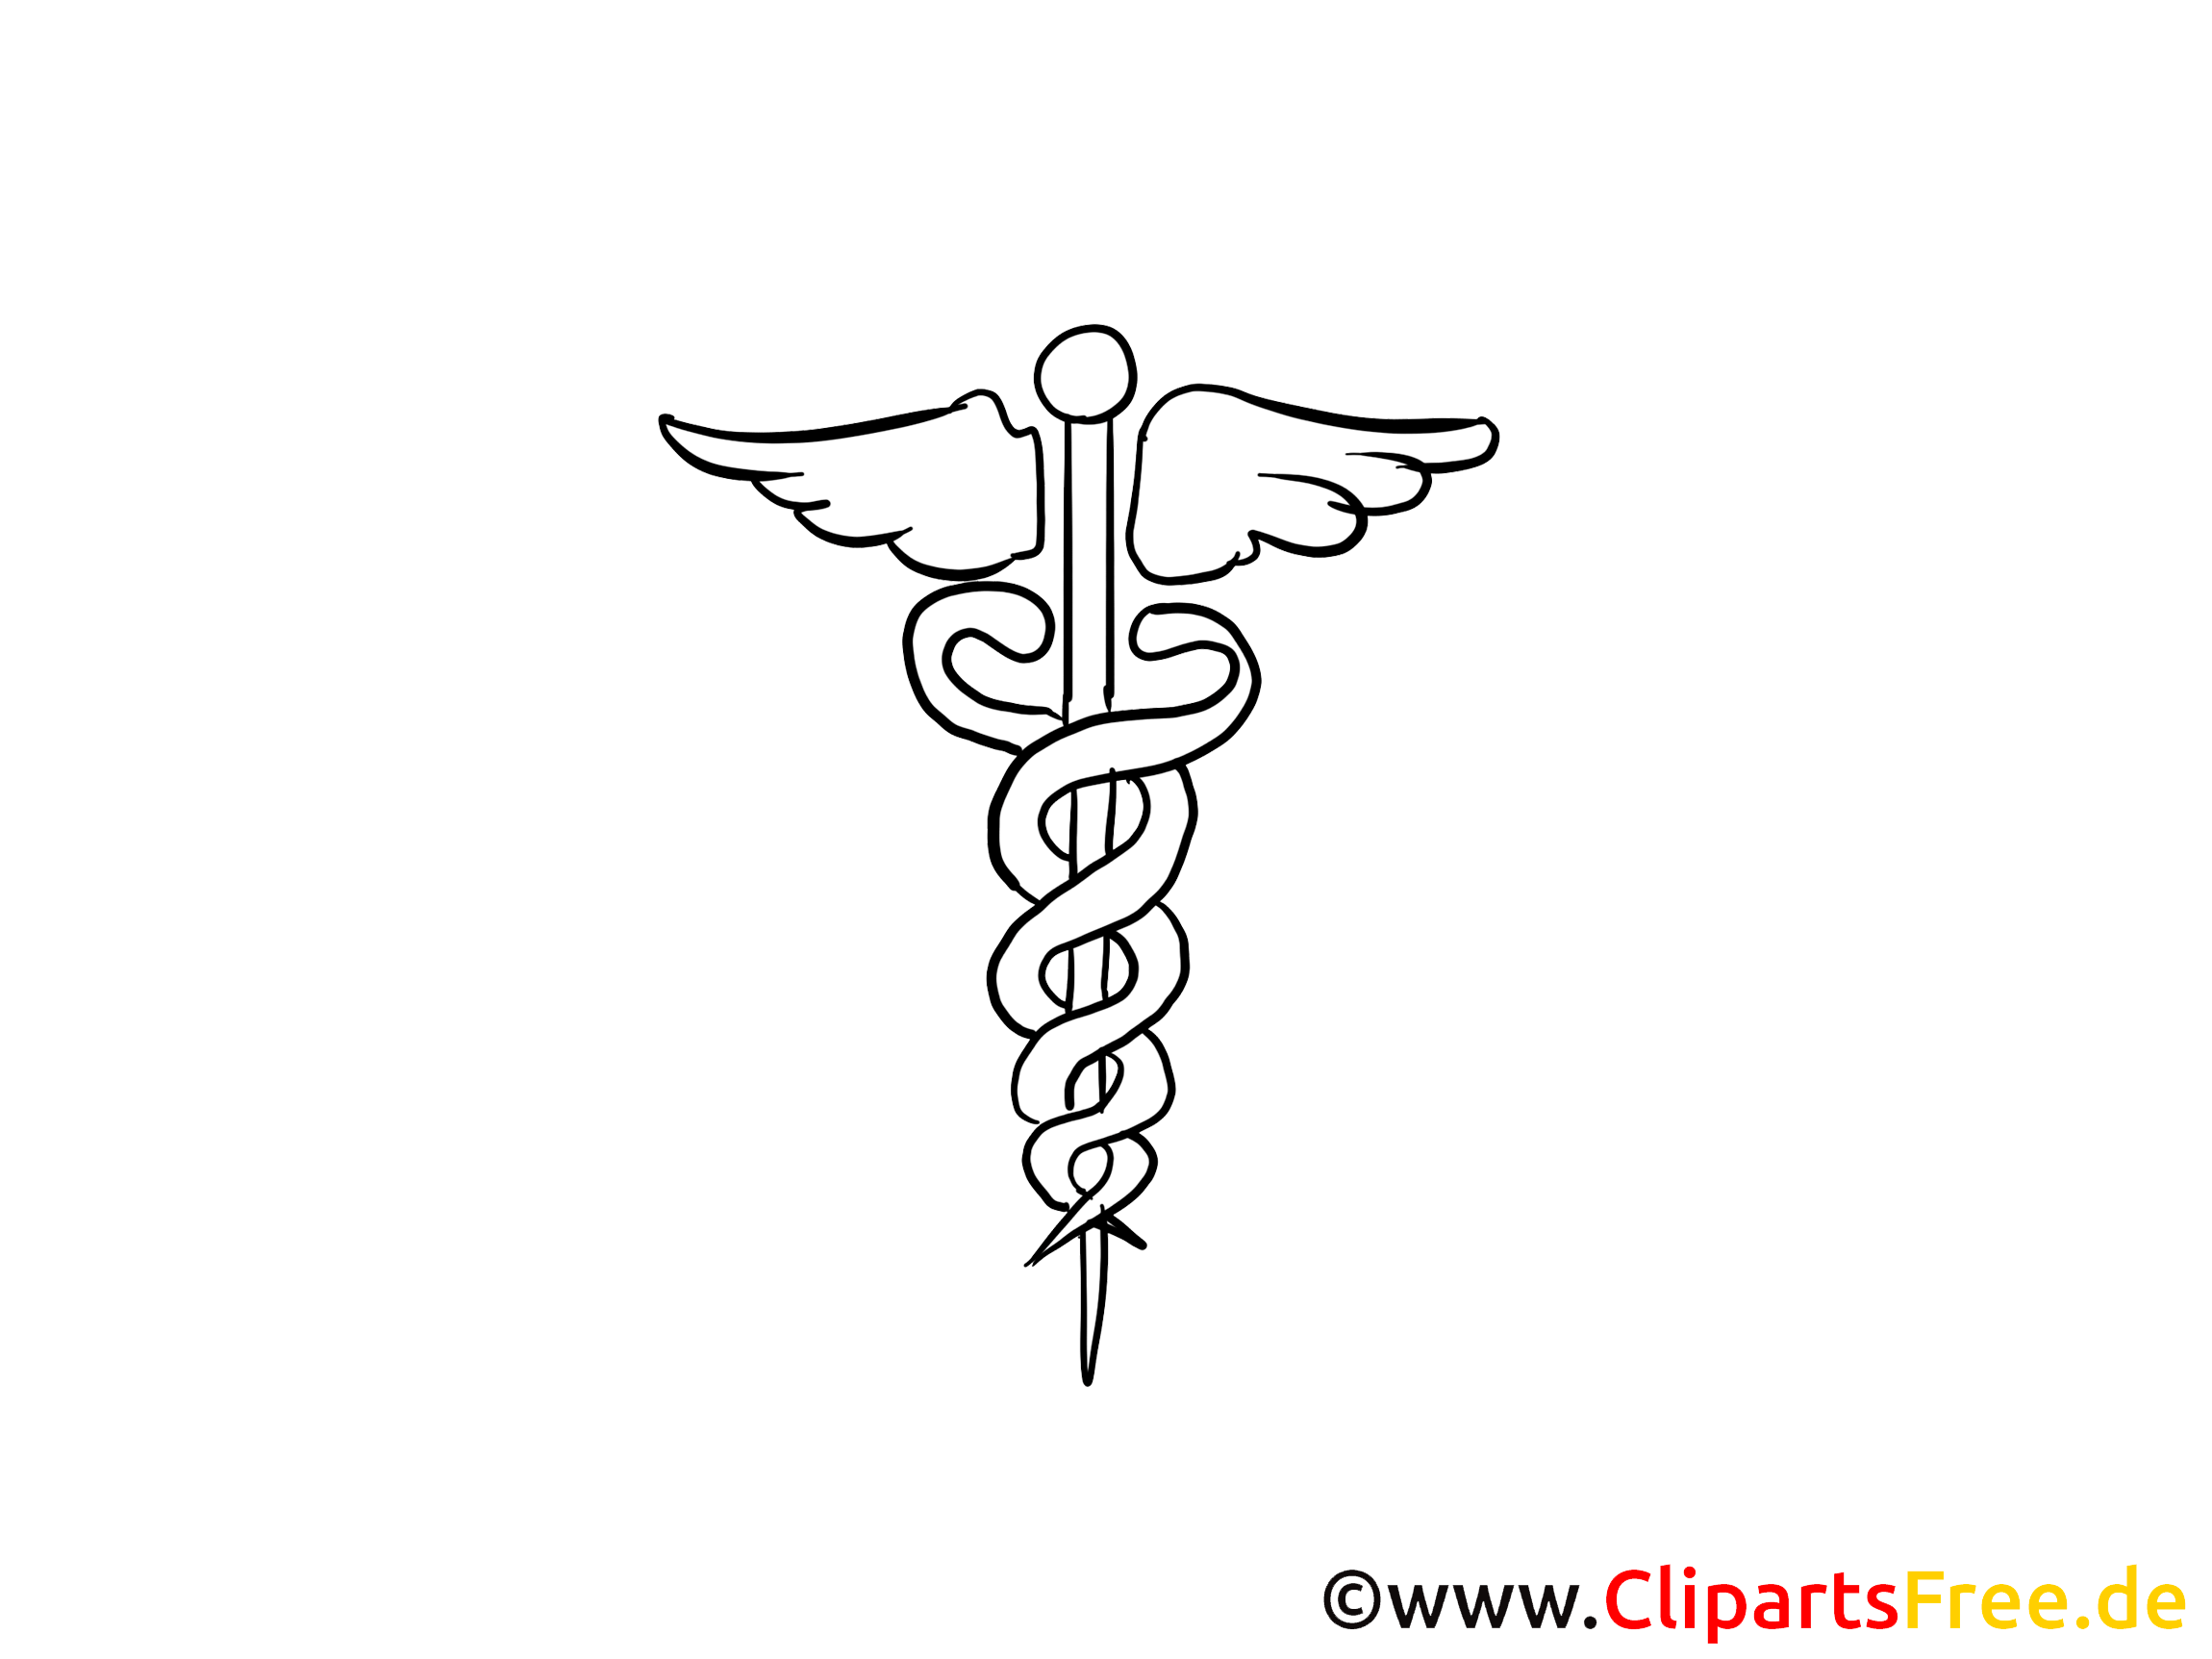 Alternativmedizin Clipart Bild Cartoon